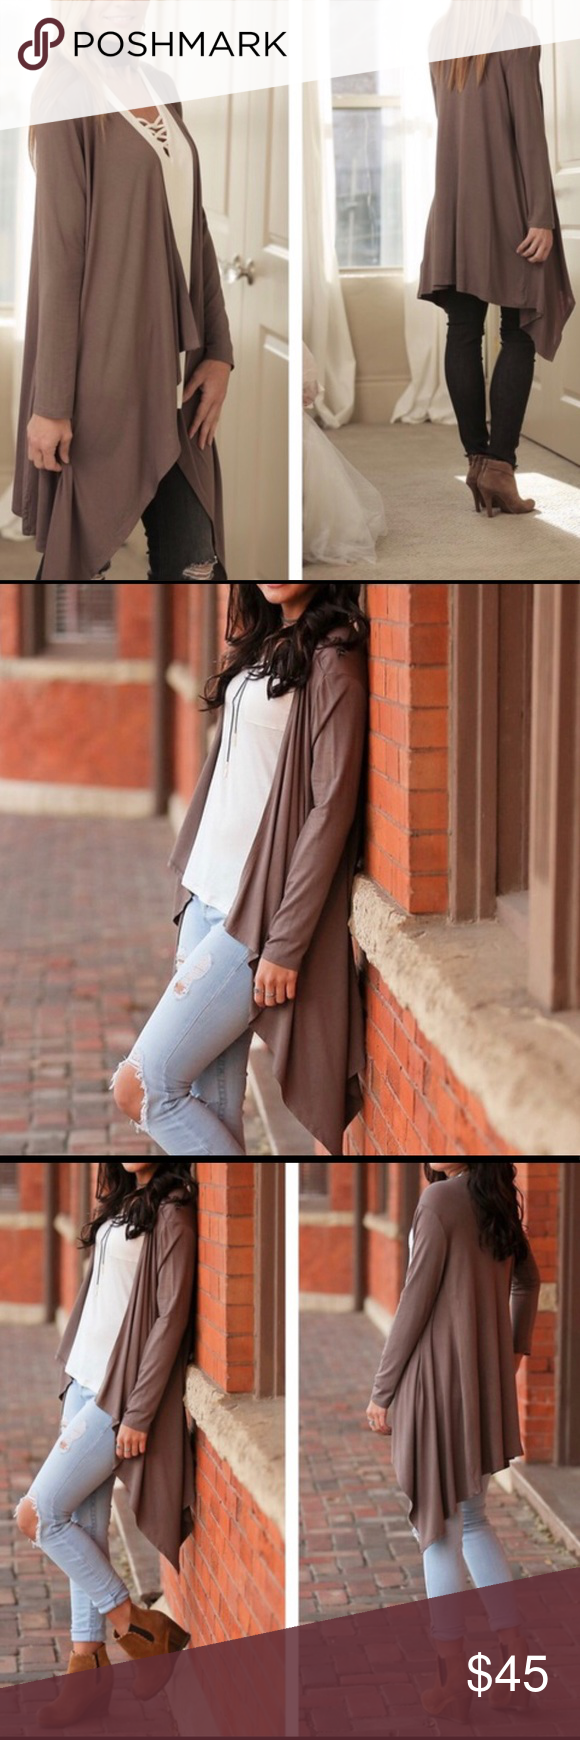 Beautiful Taupe Waterfall Cardigan Boutique | Taupe, Beautiful and ...